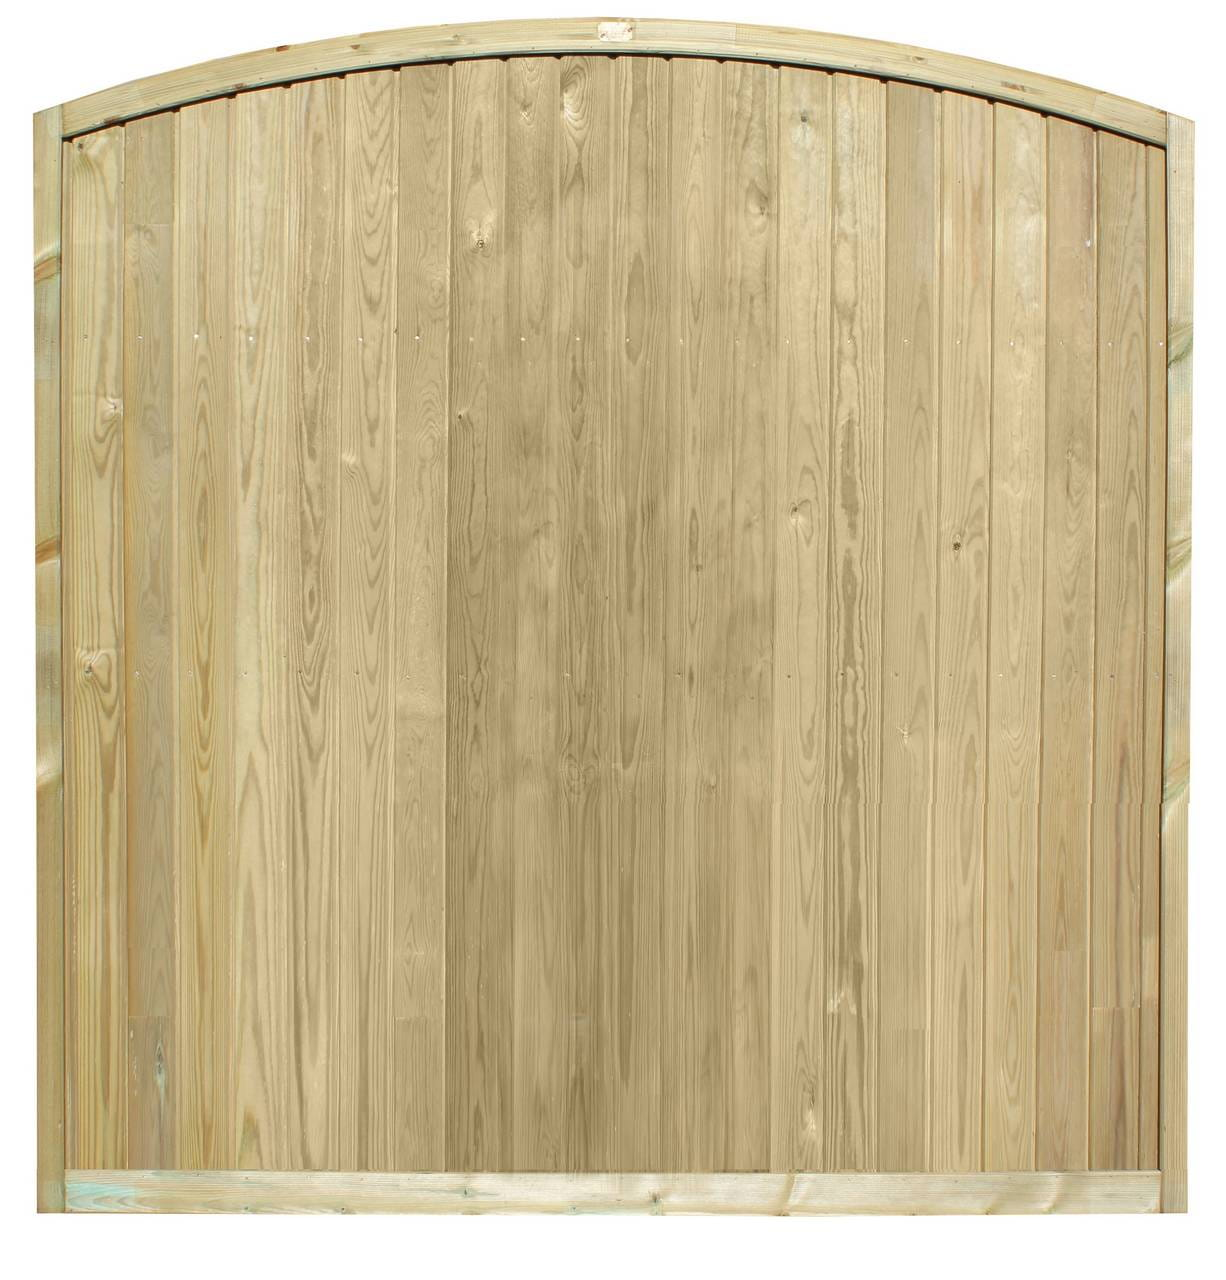 Tongue and Groove Convex Fence Panel 6ft